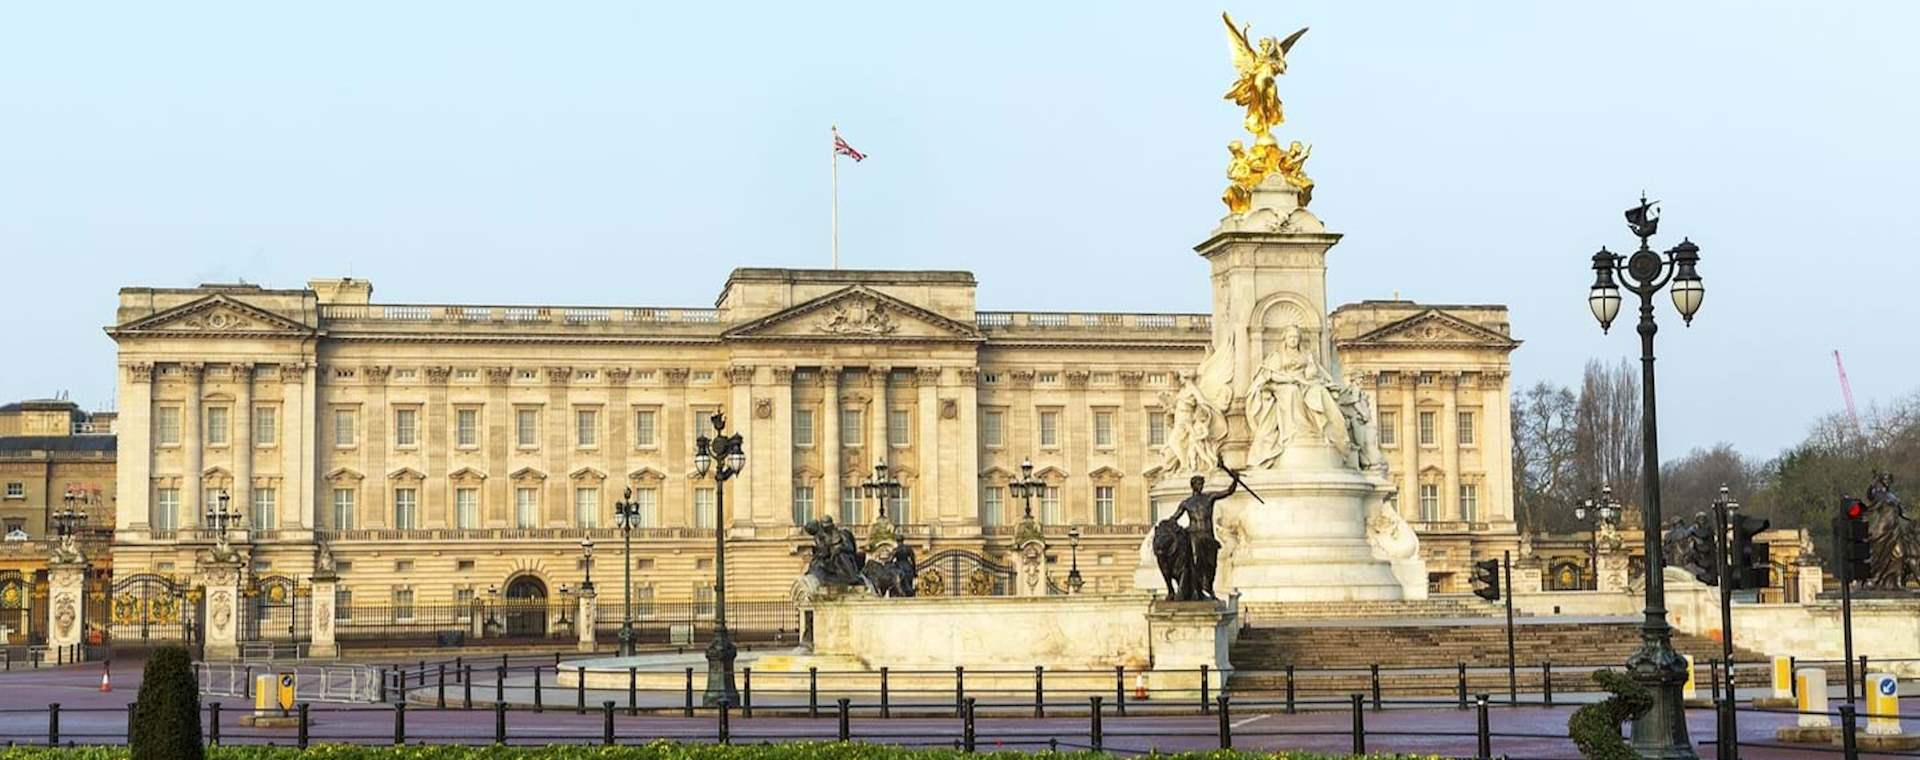 Buckingham Palace State Rooms Tour with Changing of the Guard